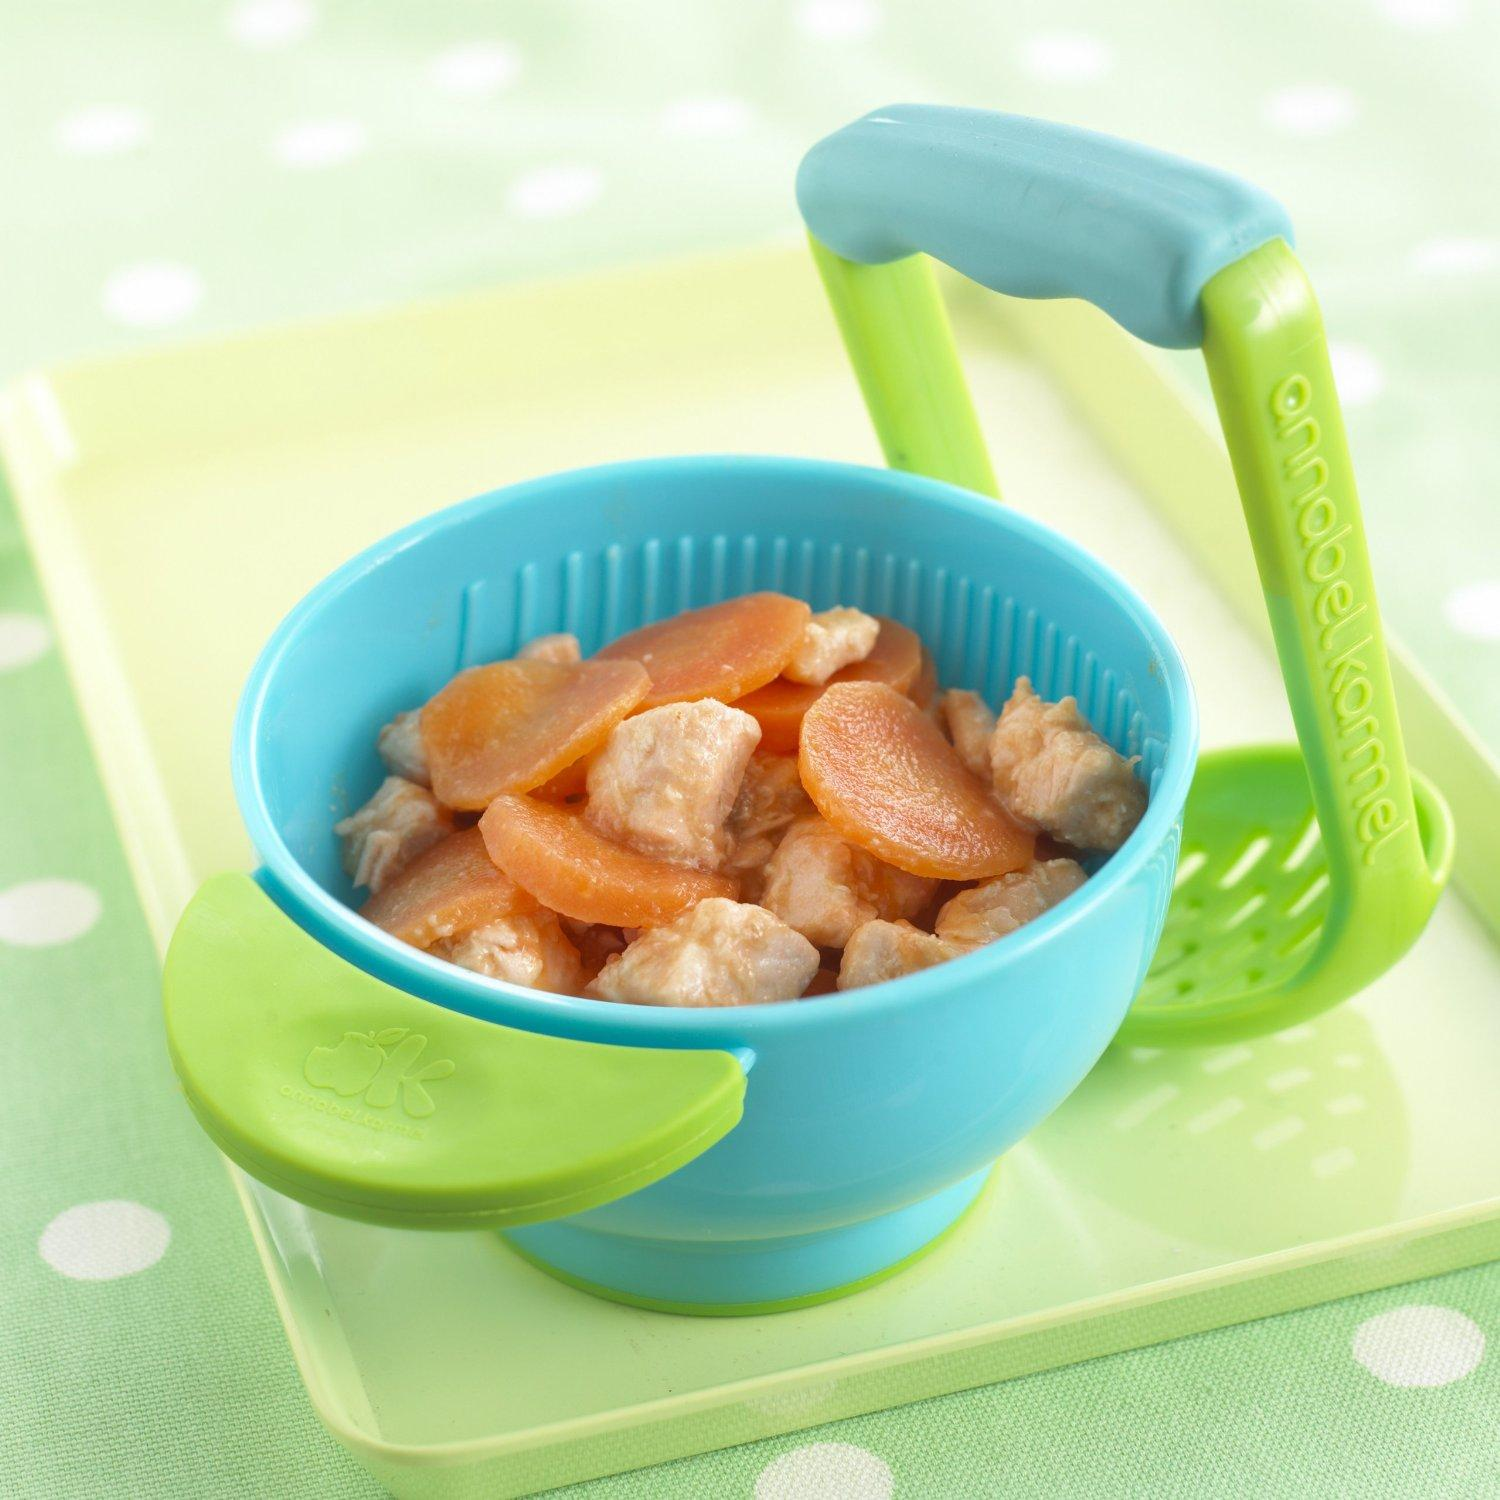 $5.72 NUK Mash and Serve Bowl for Making Homemade Baby Food